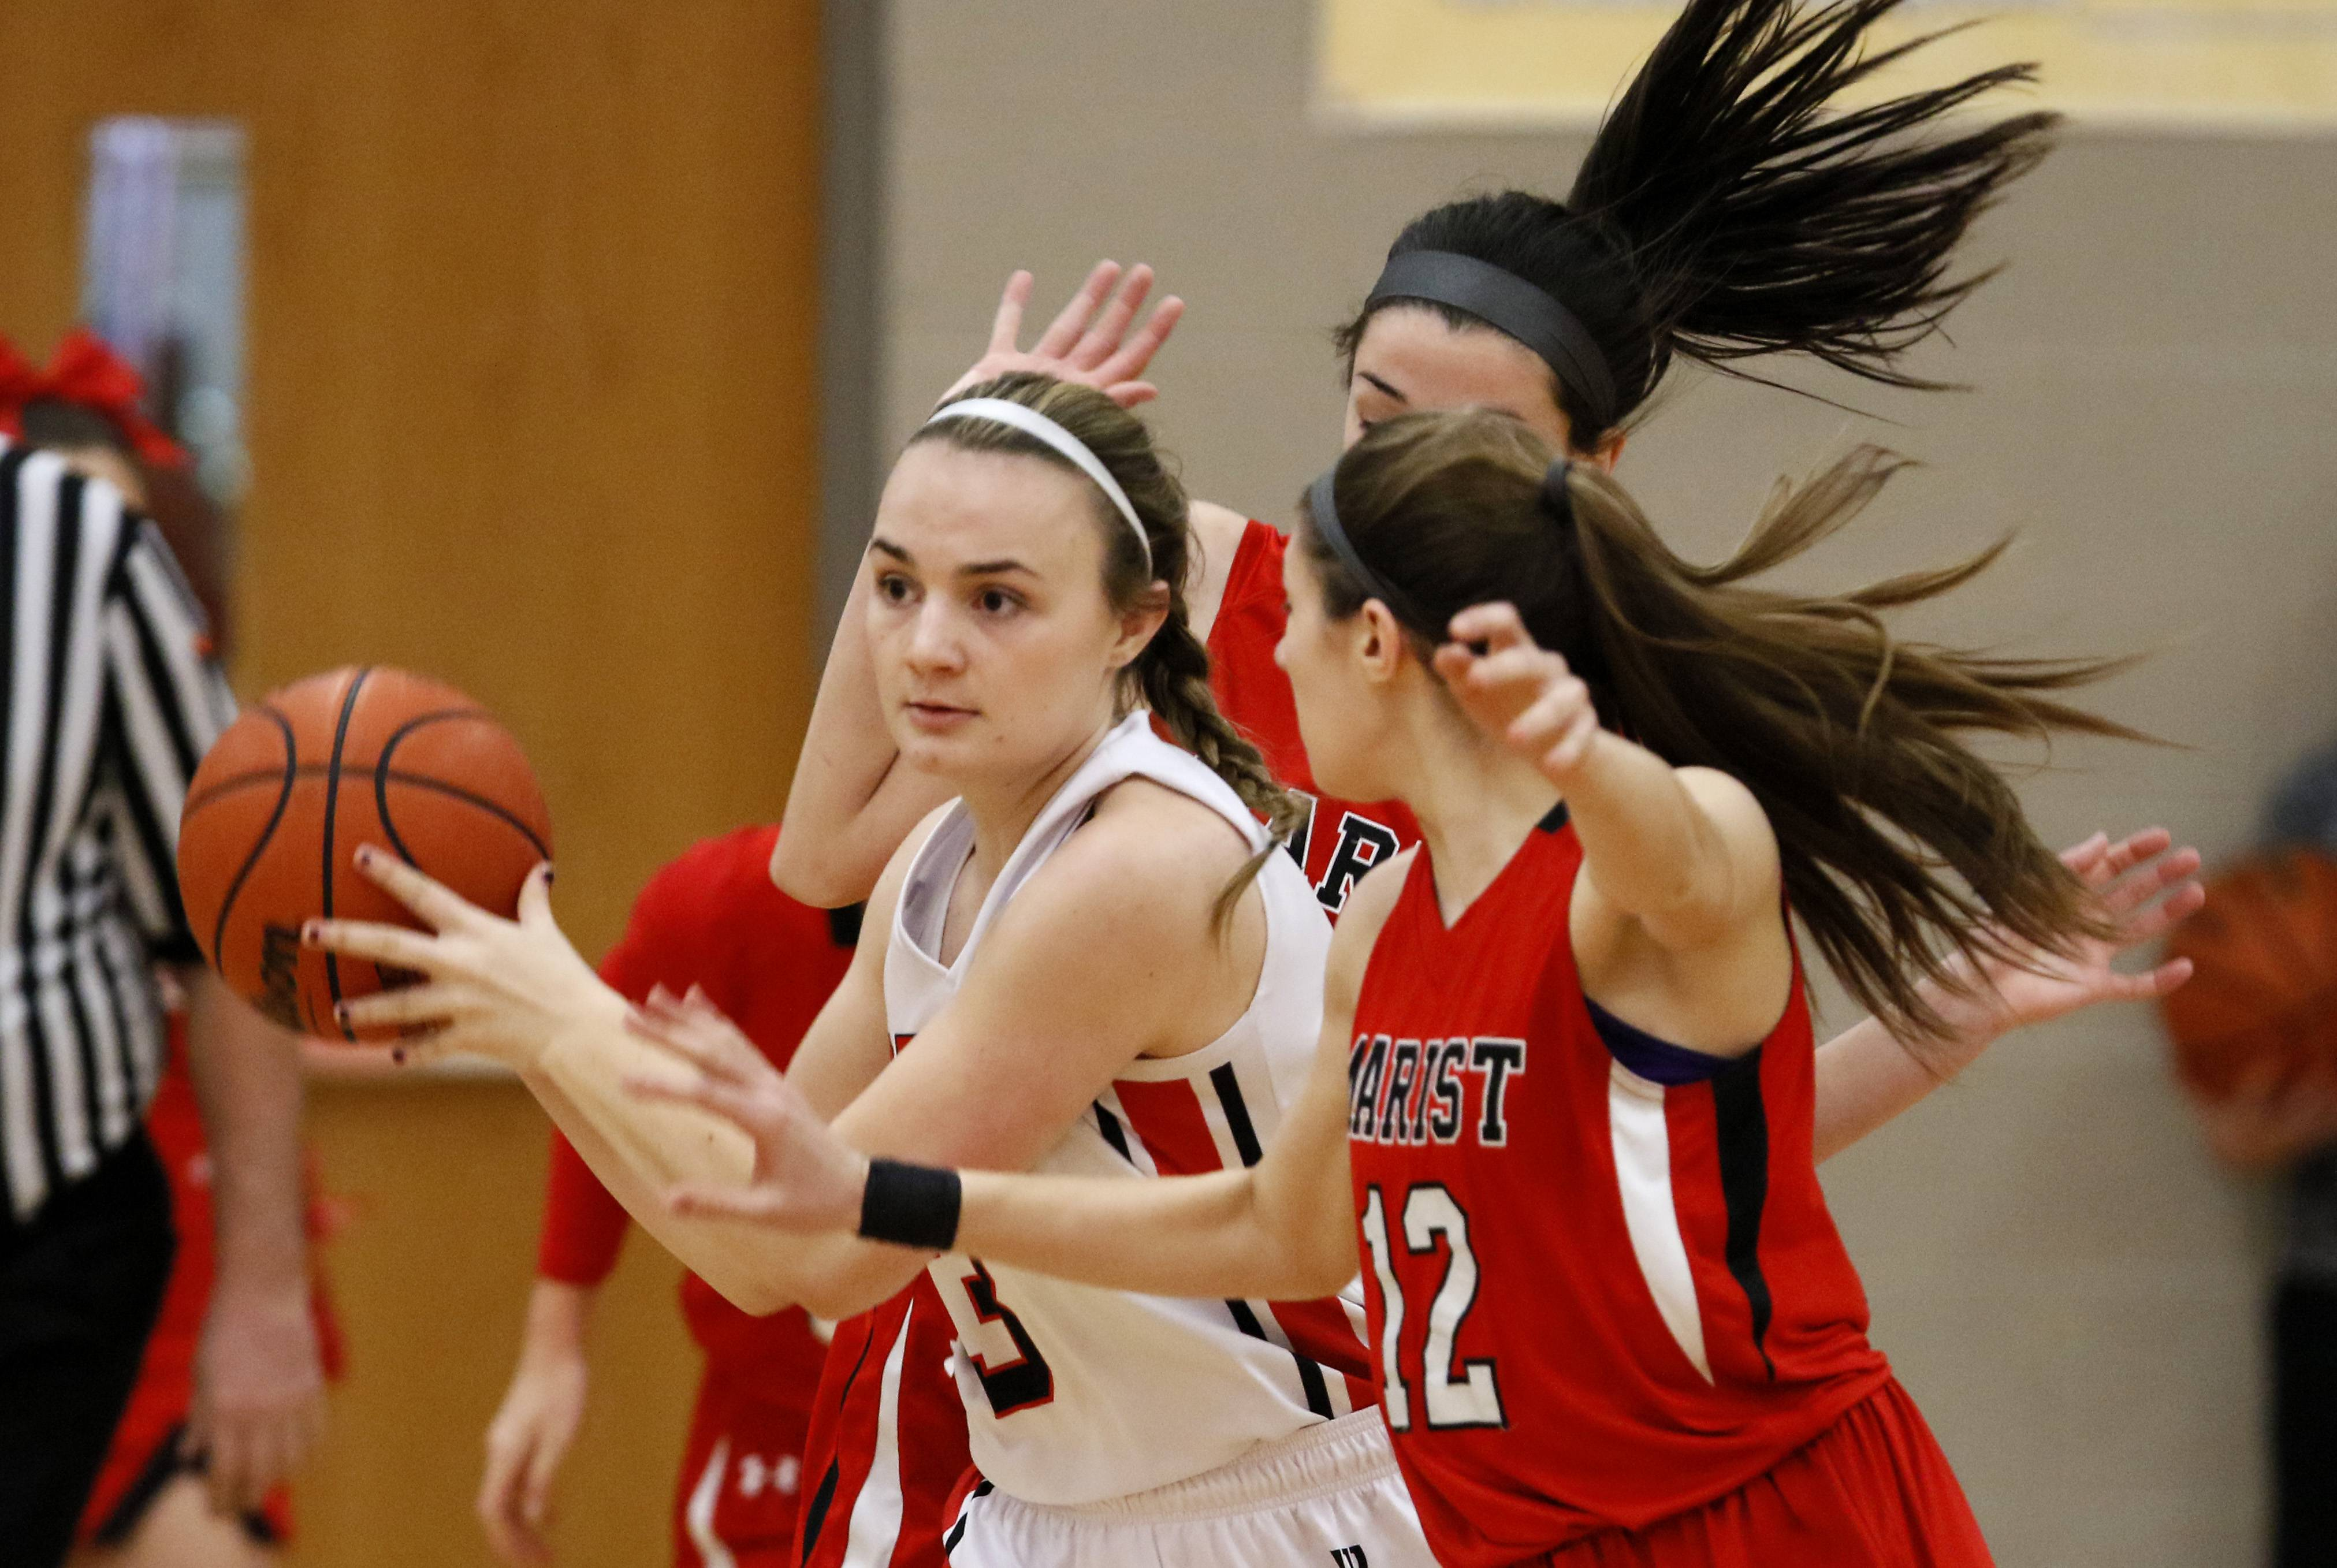 Benet Academy's Ali Kramer, left, pushes the ball up court against Marist during girls basketball action in Lisle.